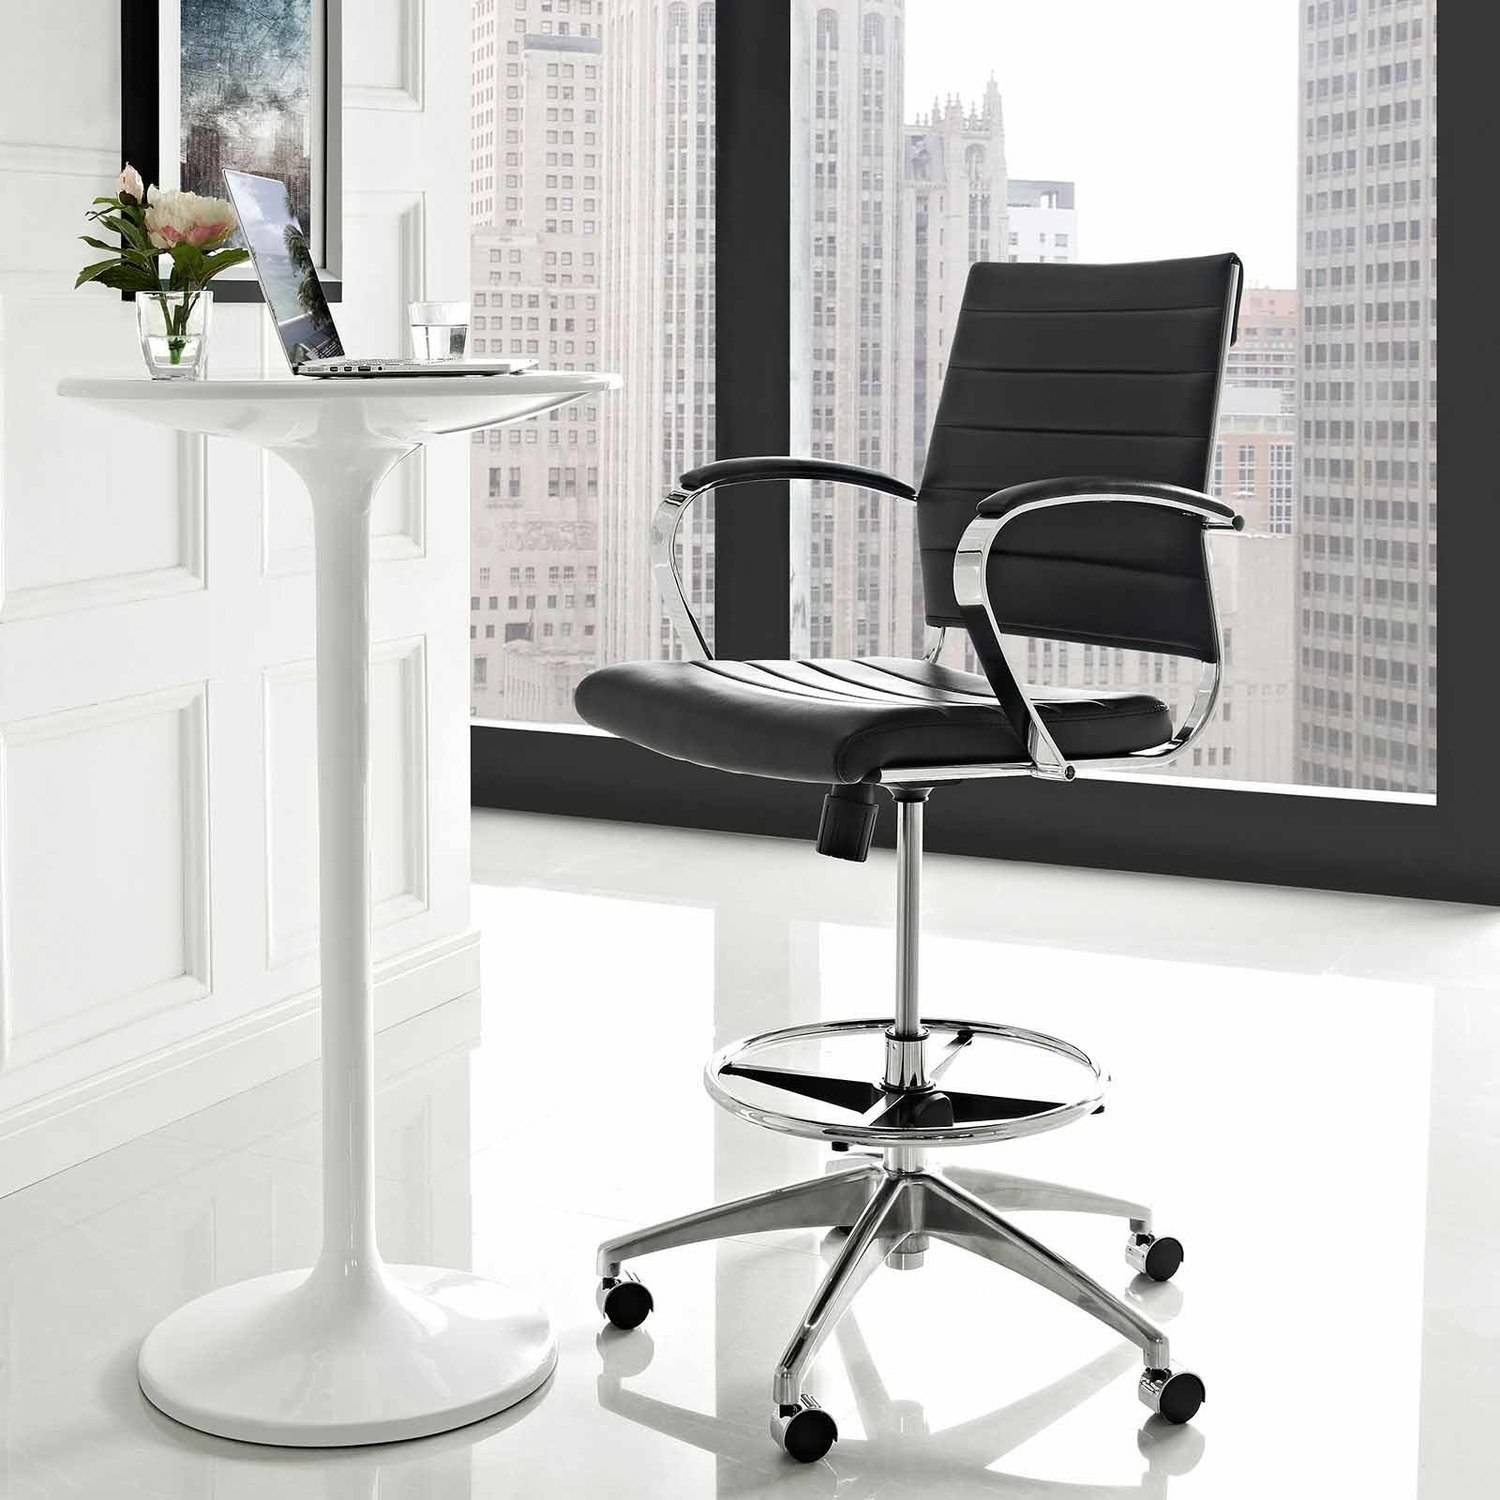 Superb Modway Jive Leatherette Drafting Chair With Aluminum Frame In Black Image 1  Of 5